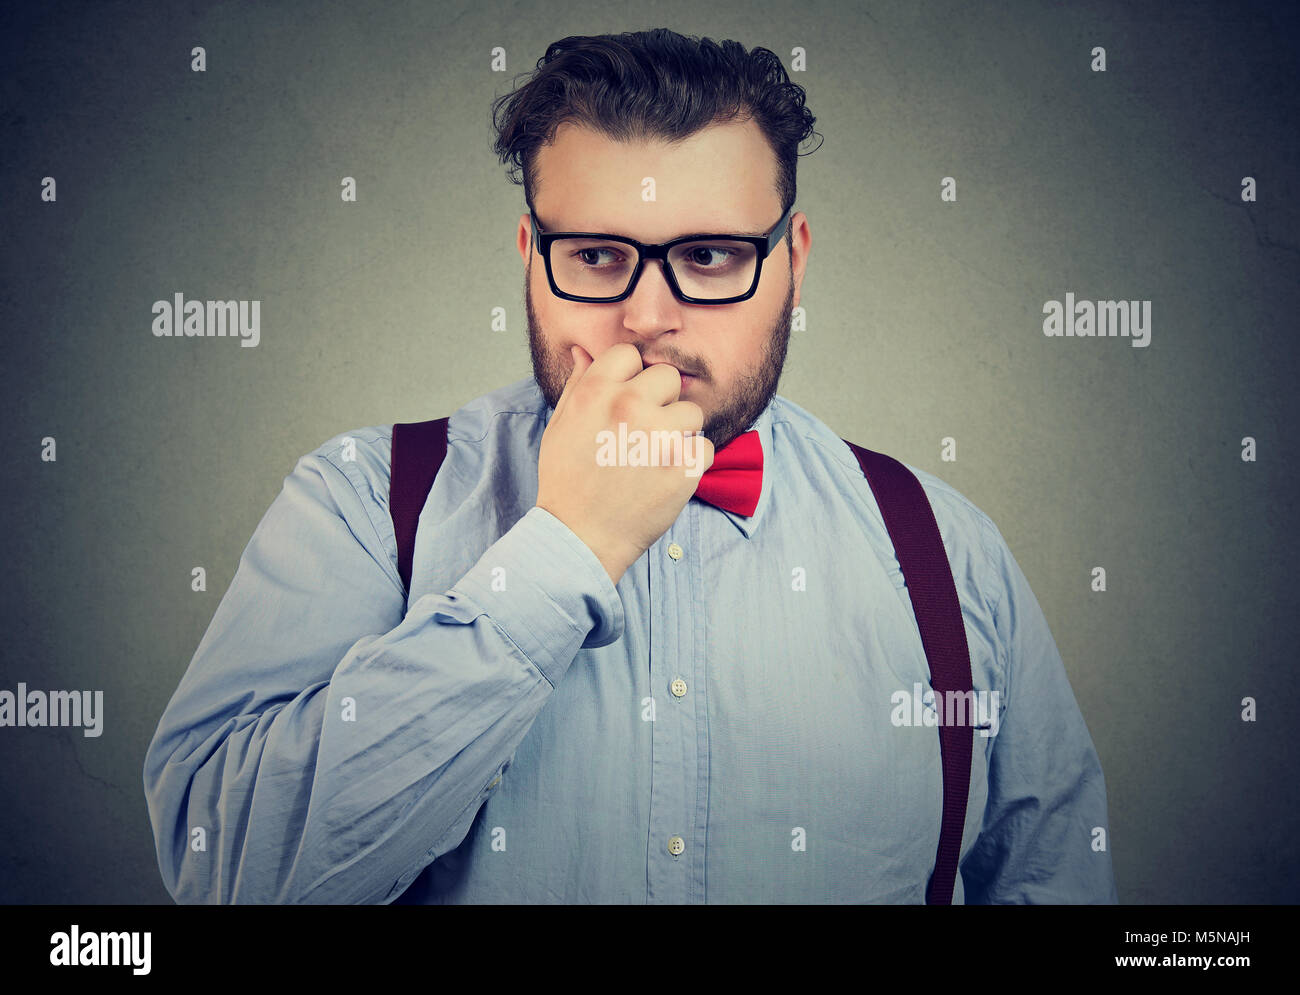 Portrait of a preoccupied anxious young man looking down - Stock Image